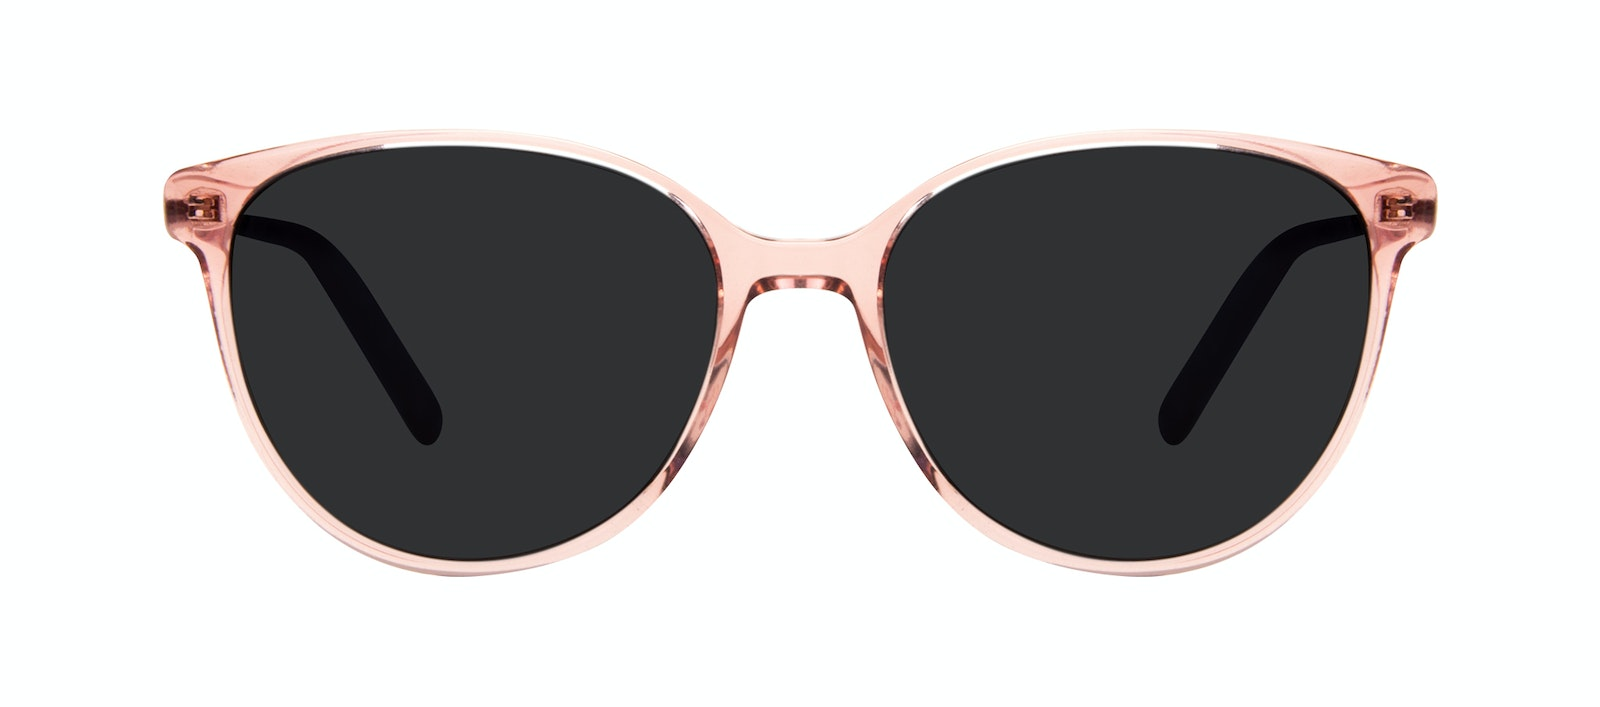 Affordable Fashion Glasses Round Sunglasses Women Imagine II Rose Marble Front